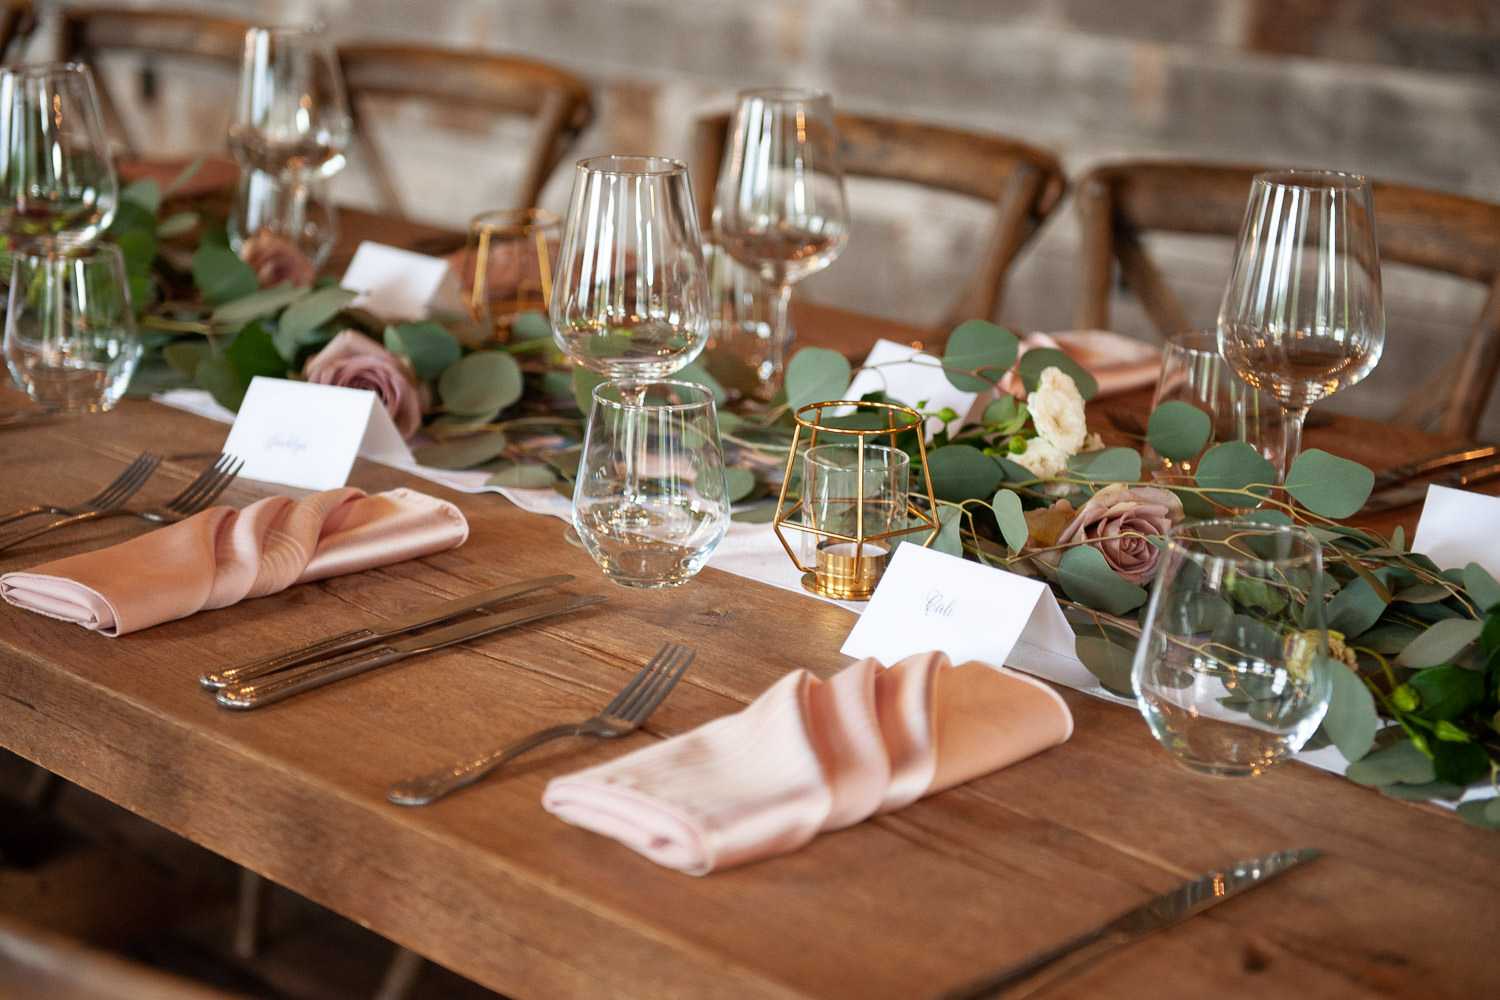 Tabletop decor at a Creekside Villa wedding in Canmore captured by Tara Whittaker Photography